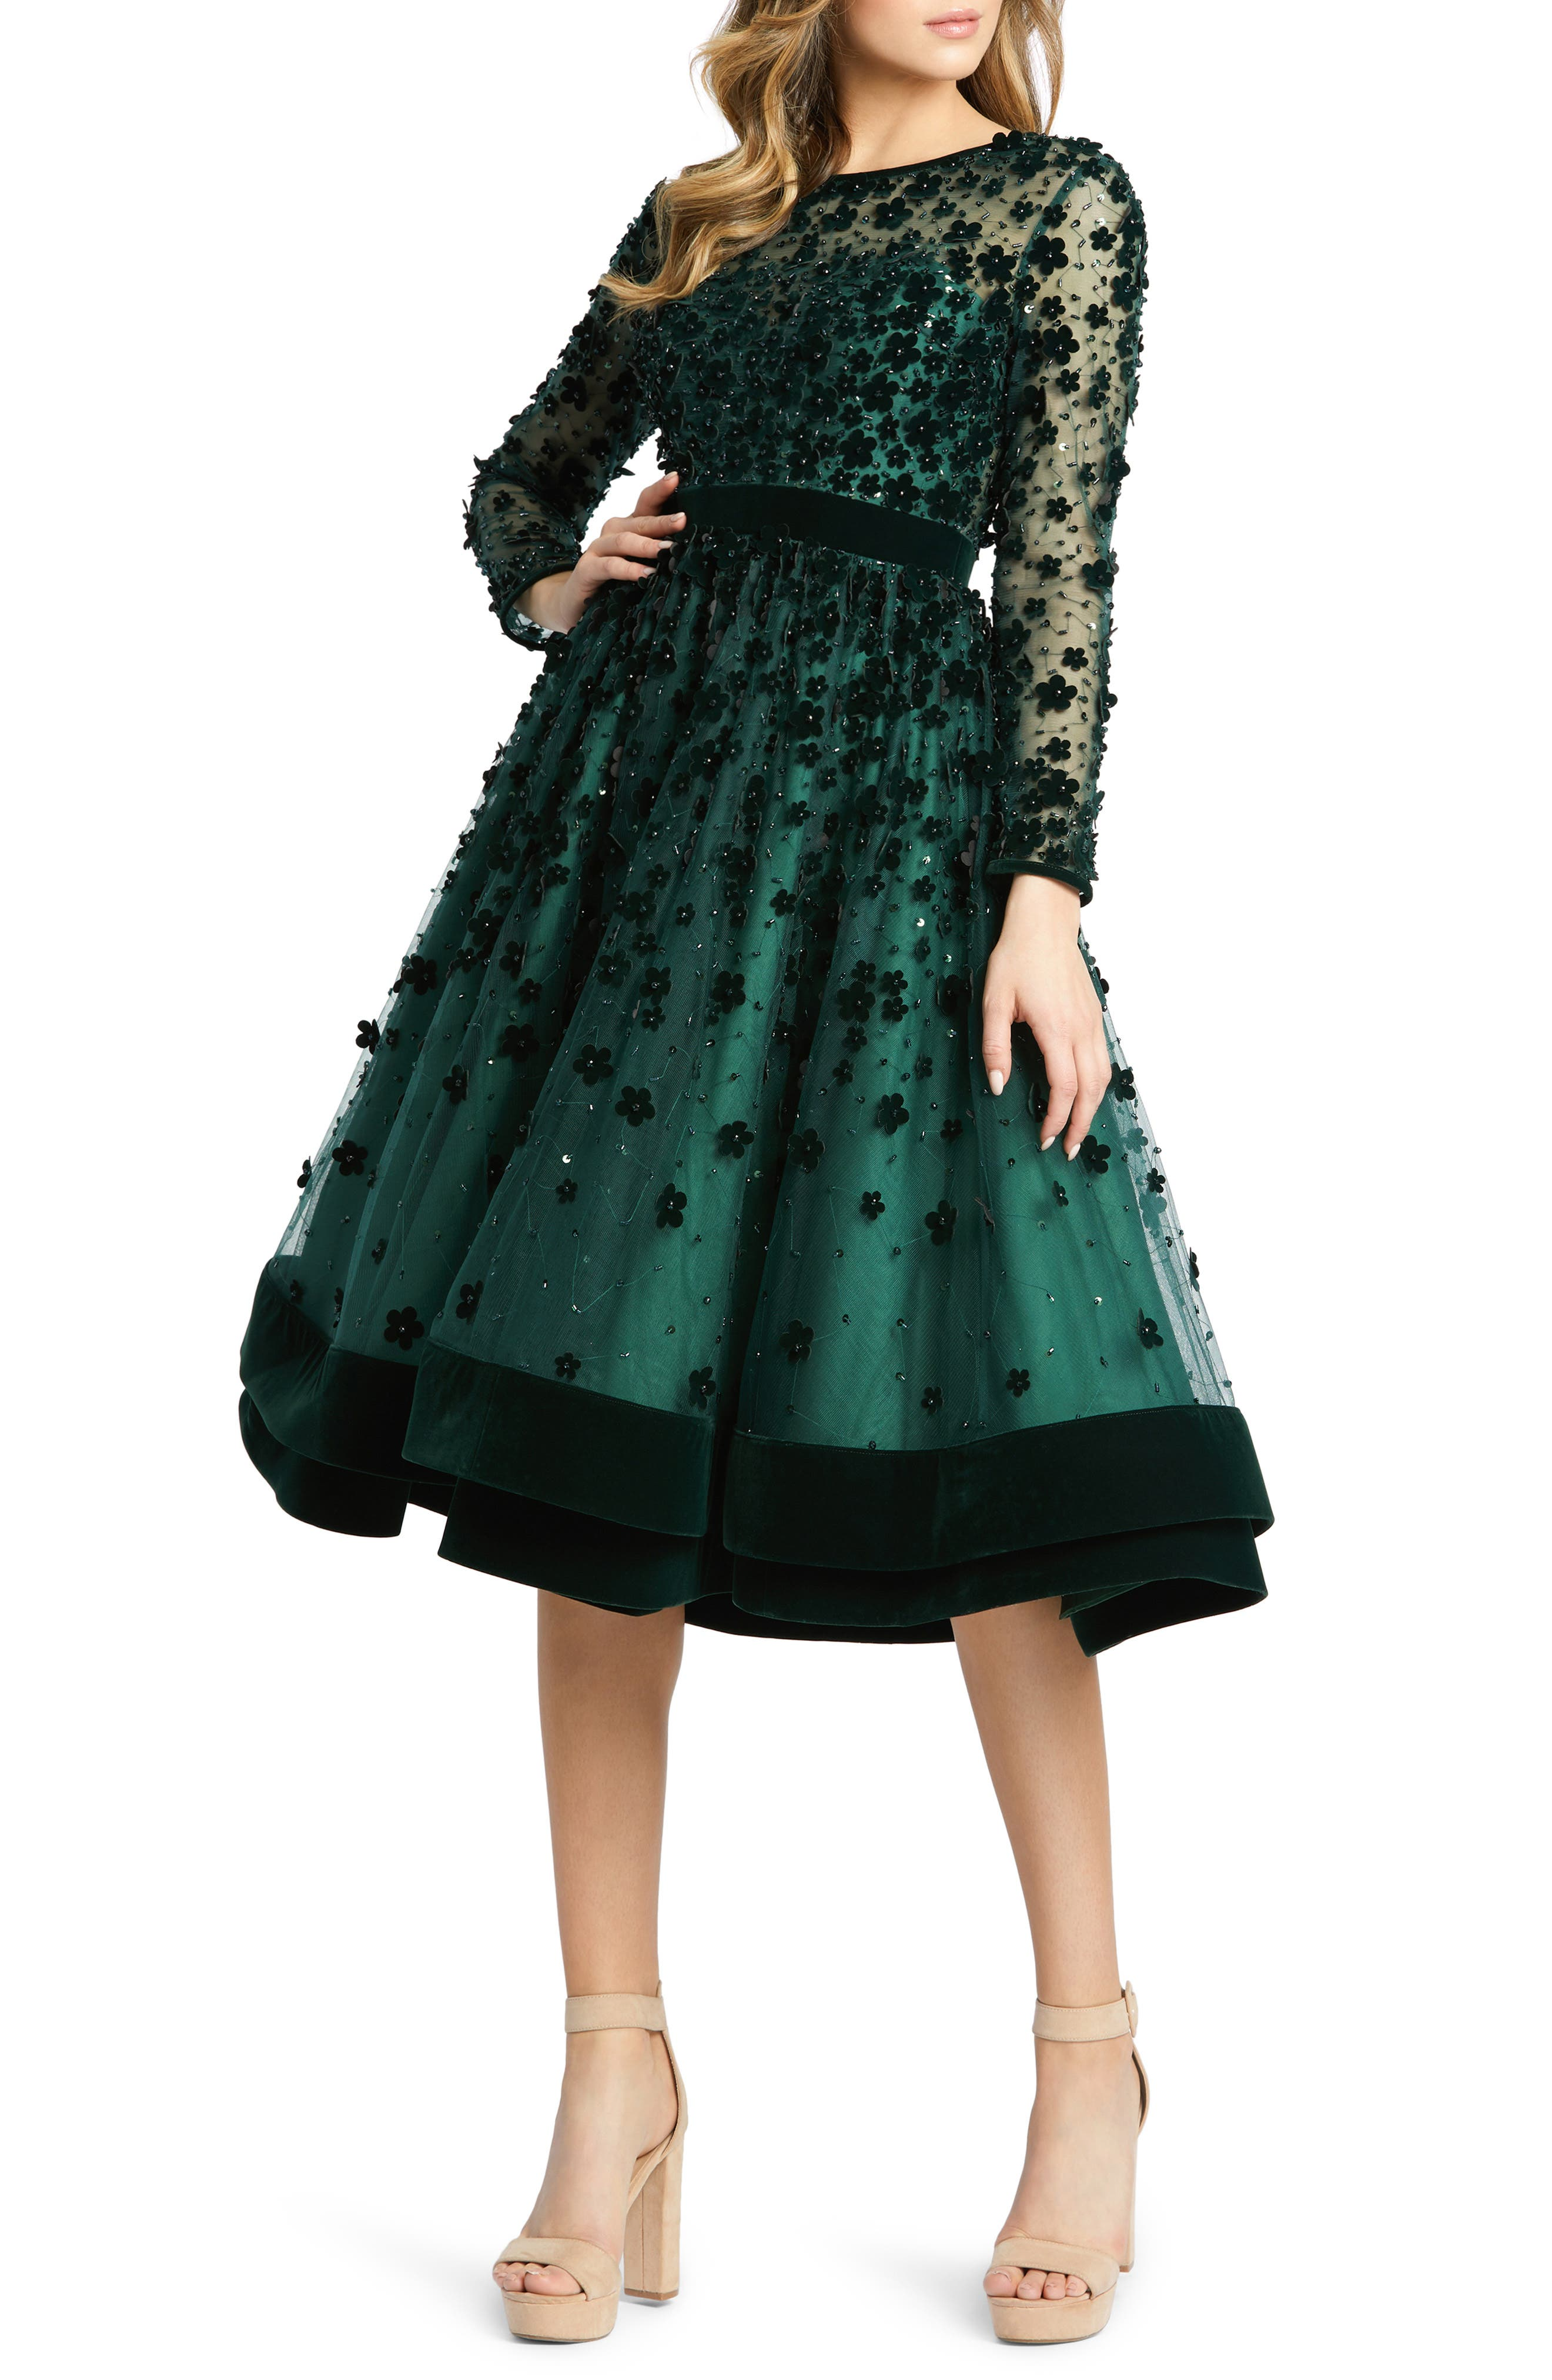 1950s History of Prom, Party, and Formal Dresses Womens MAC Duggal Long Sleeve Fit  Flare Velvet Embellished Cocktail Dress Size 12 - Green $498.00 AT vintagedancer.com